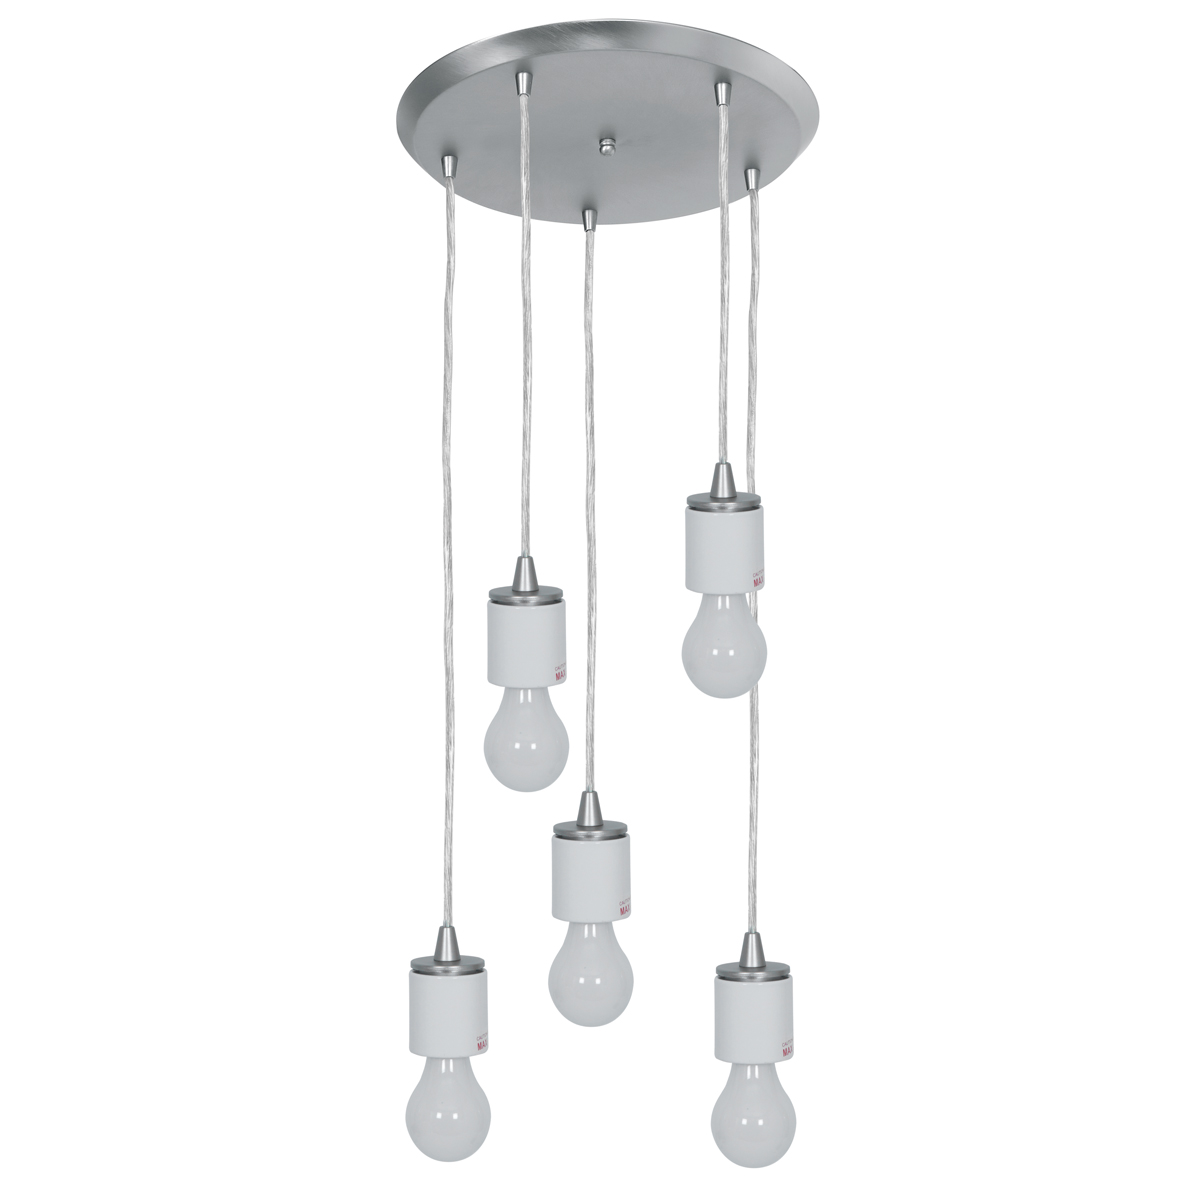 Access Lighting (52232FC) Circ 5-Light 14 Inch Canopy Pendant Assembly shown in Brushed Steel